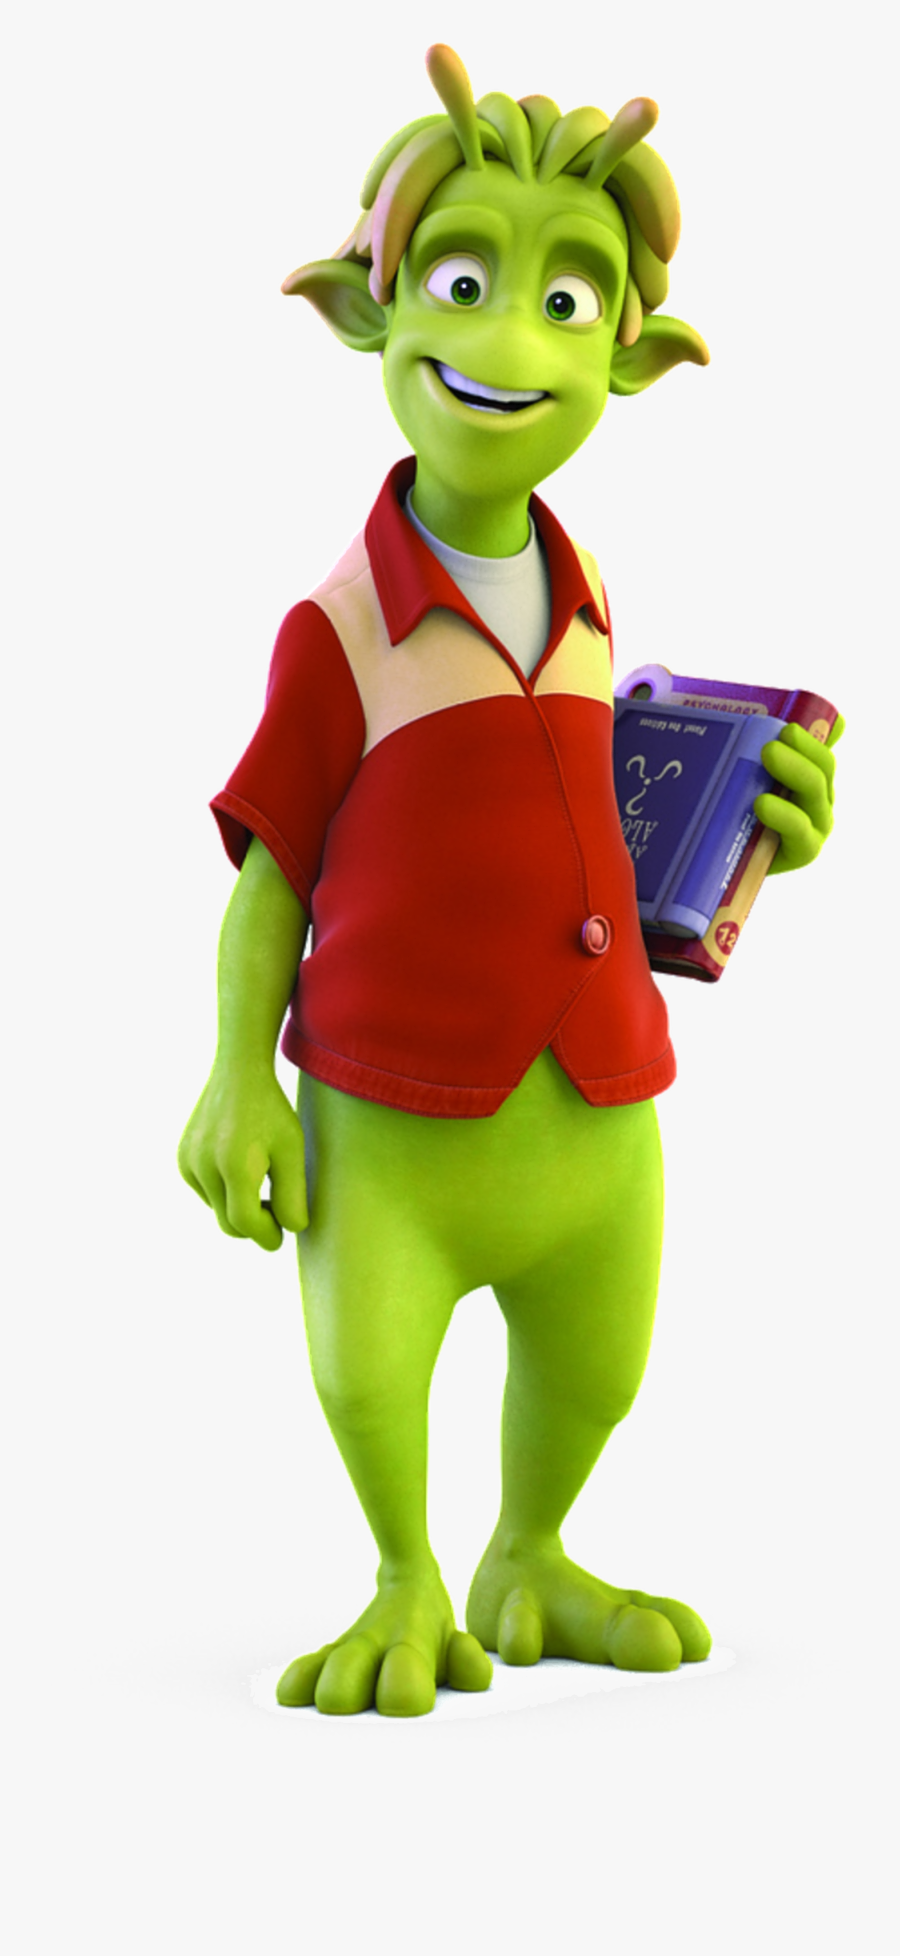 Planet 51 Main Character, Transparent Clipart